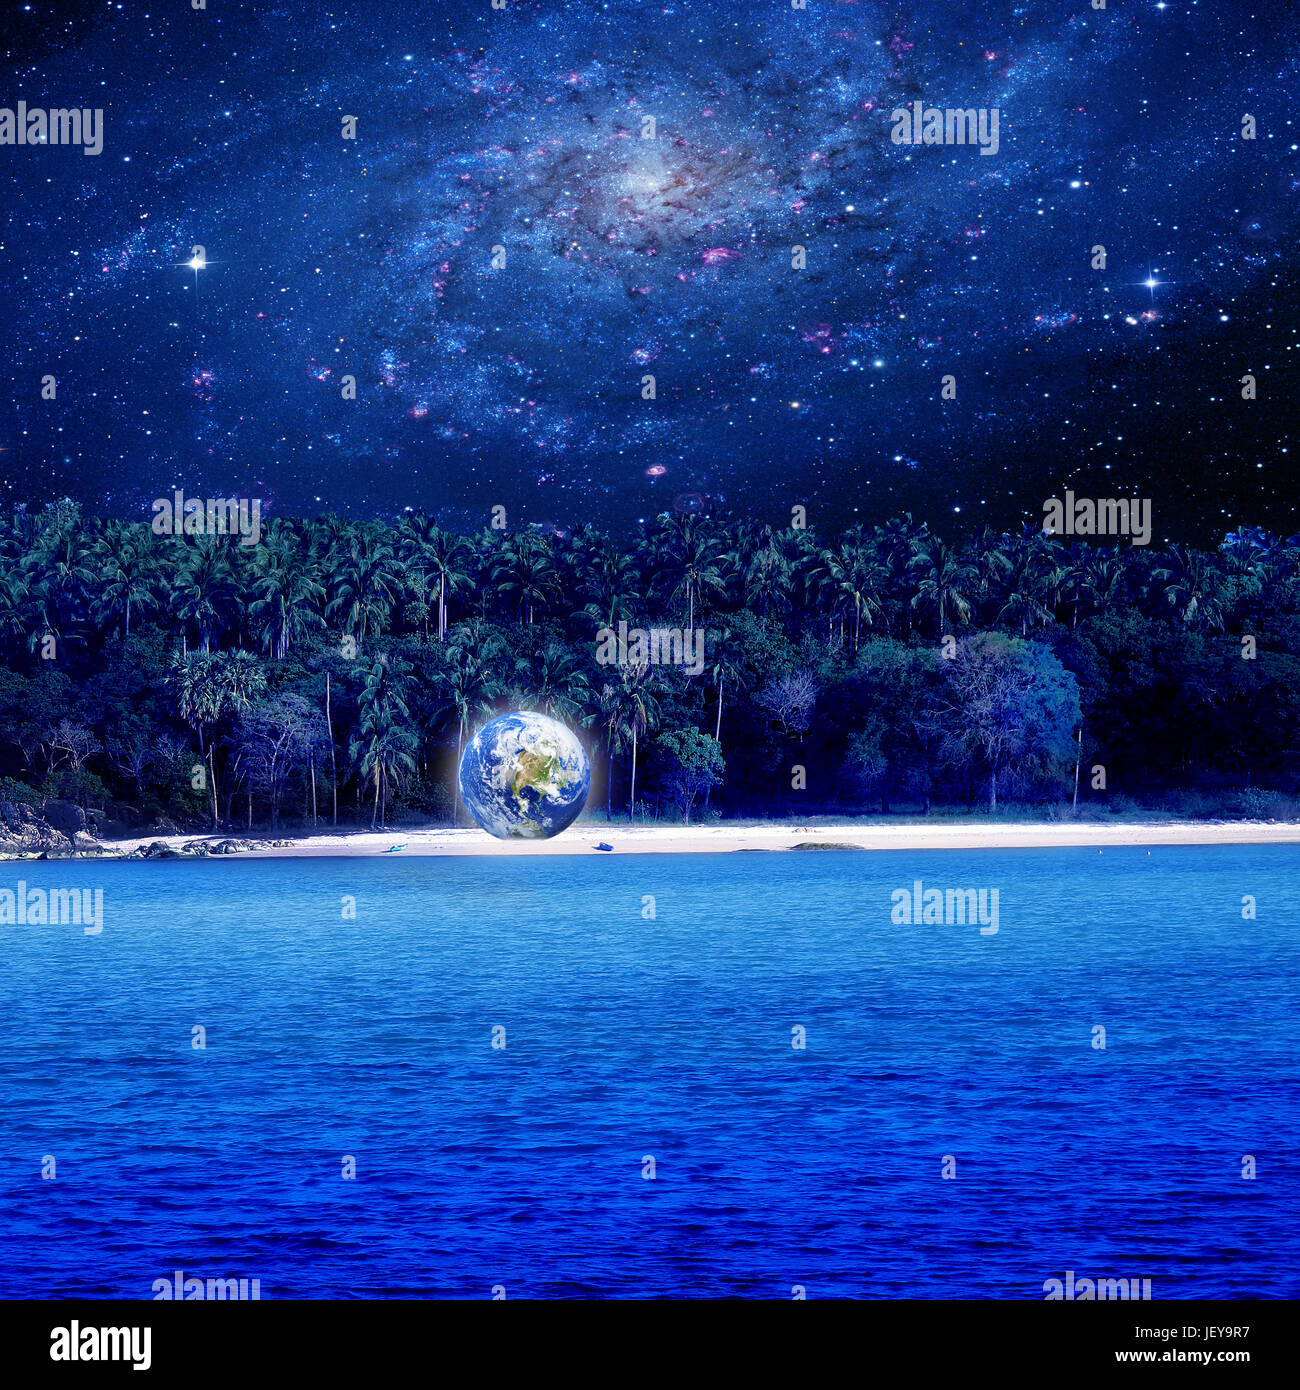 Conceptual image of world on island over galaxy sky nasa world conceptual image of world on island over galaxy sky nasa world map and space image layered and used nasa httpsflickrphotosgsf gumiabroncs Images